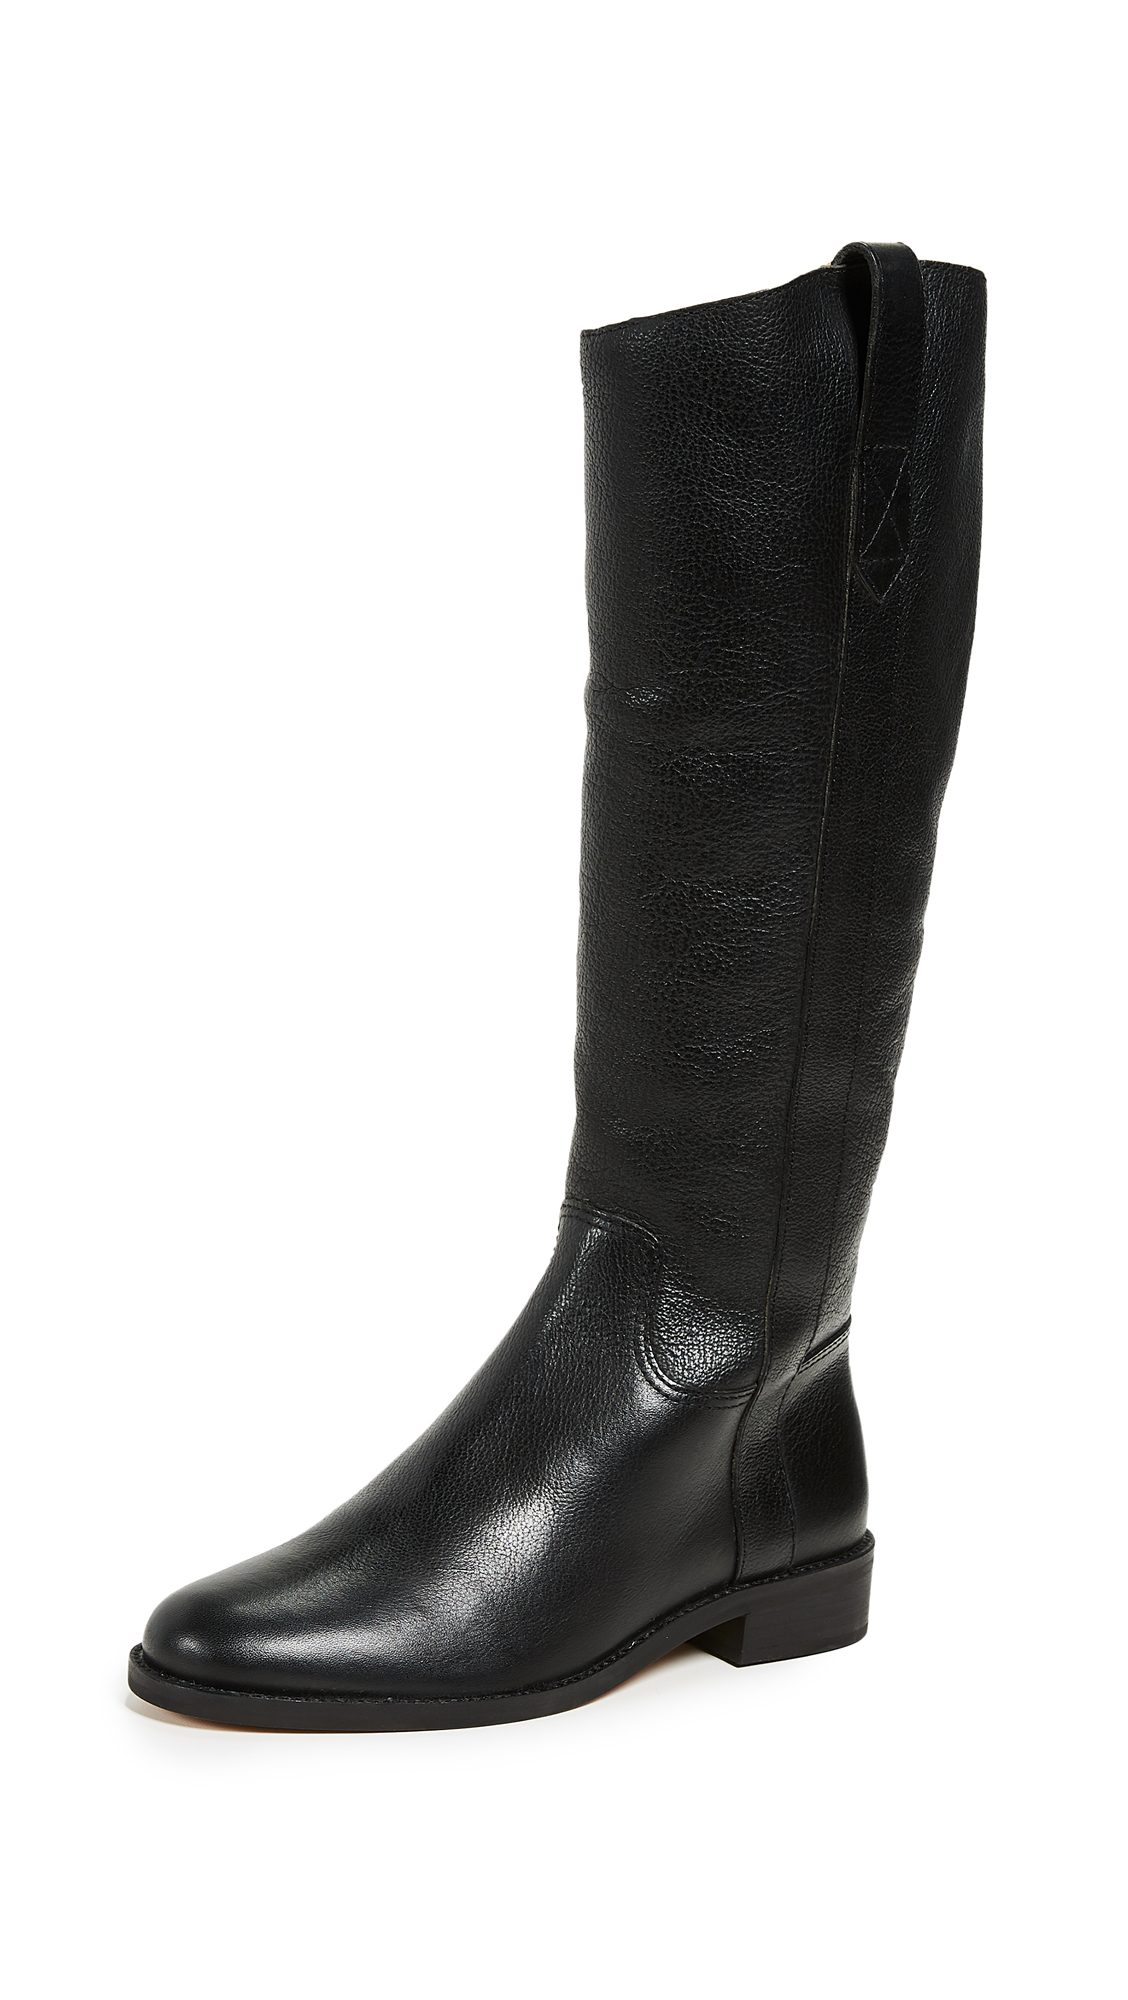 Madewell Penny Tall Boots - Black